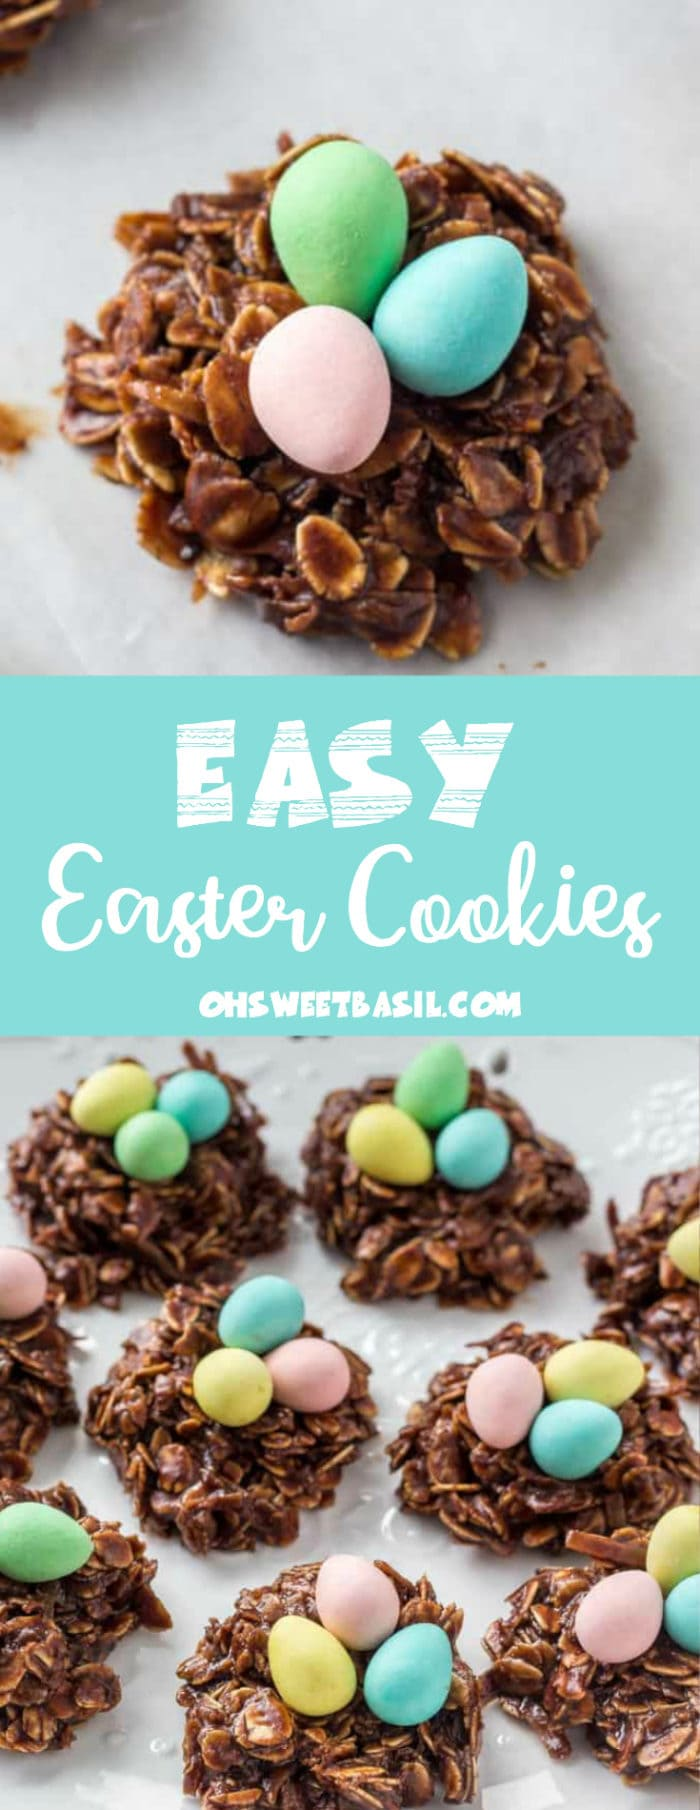 Easy no bake chocolate Easter nest cookies with three Cadbury eggs in the middle.